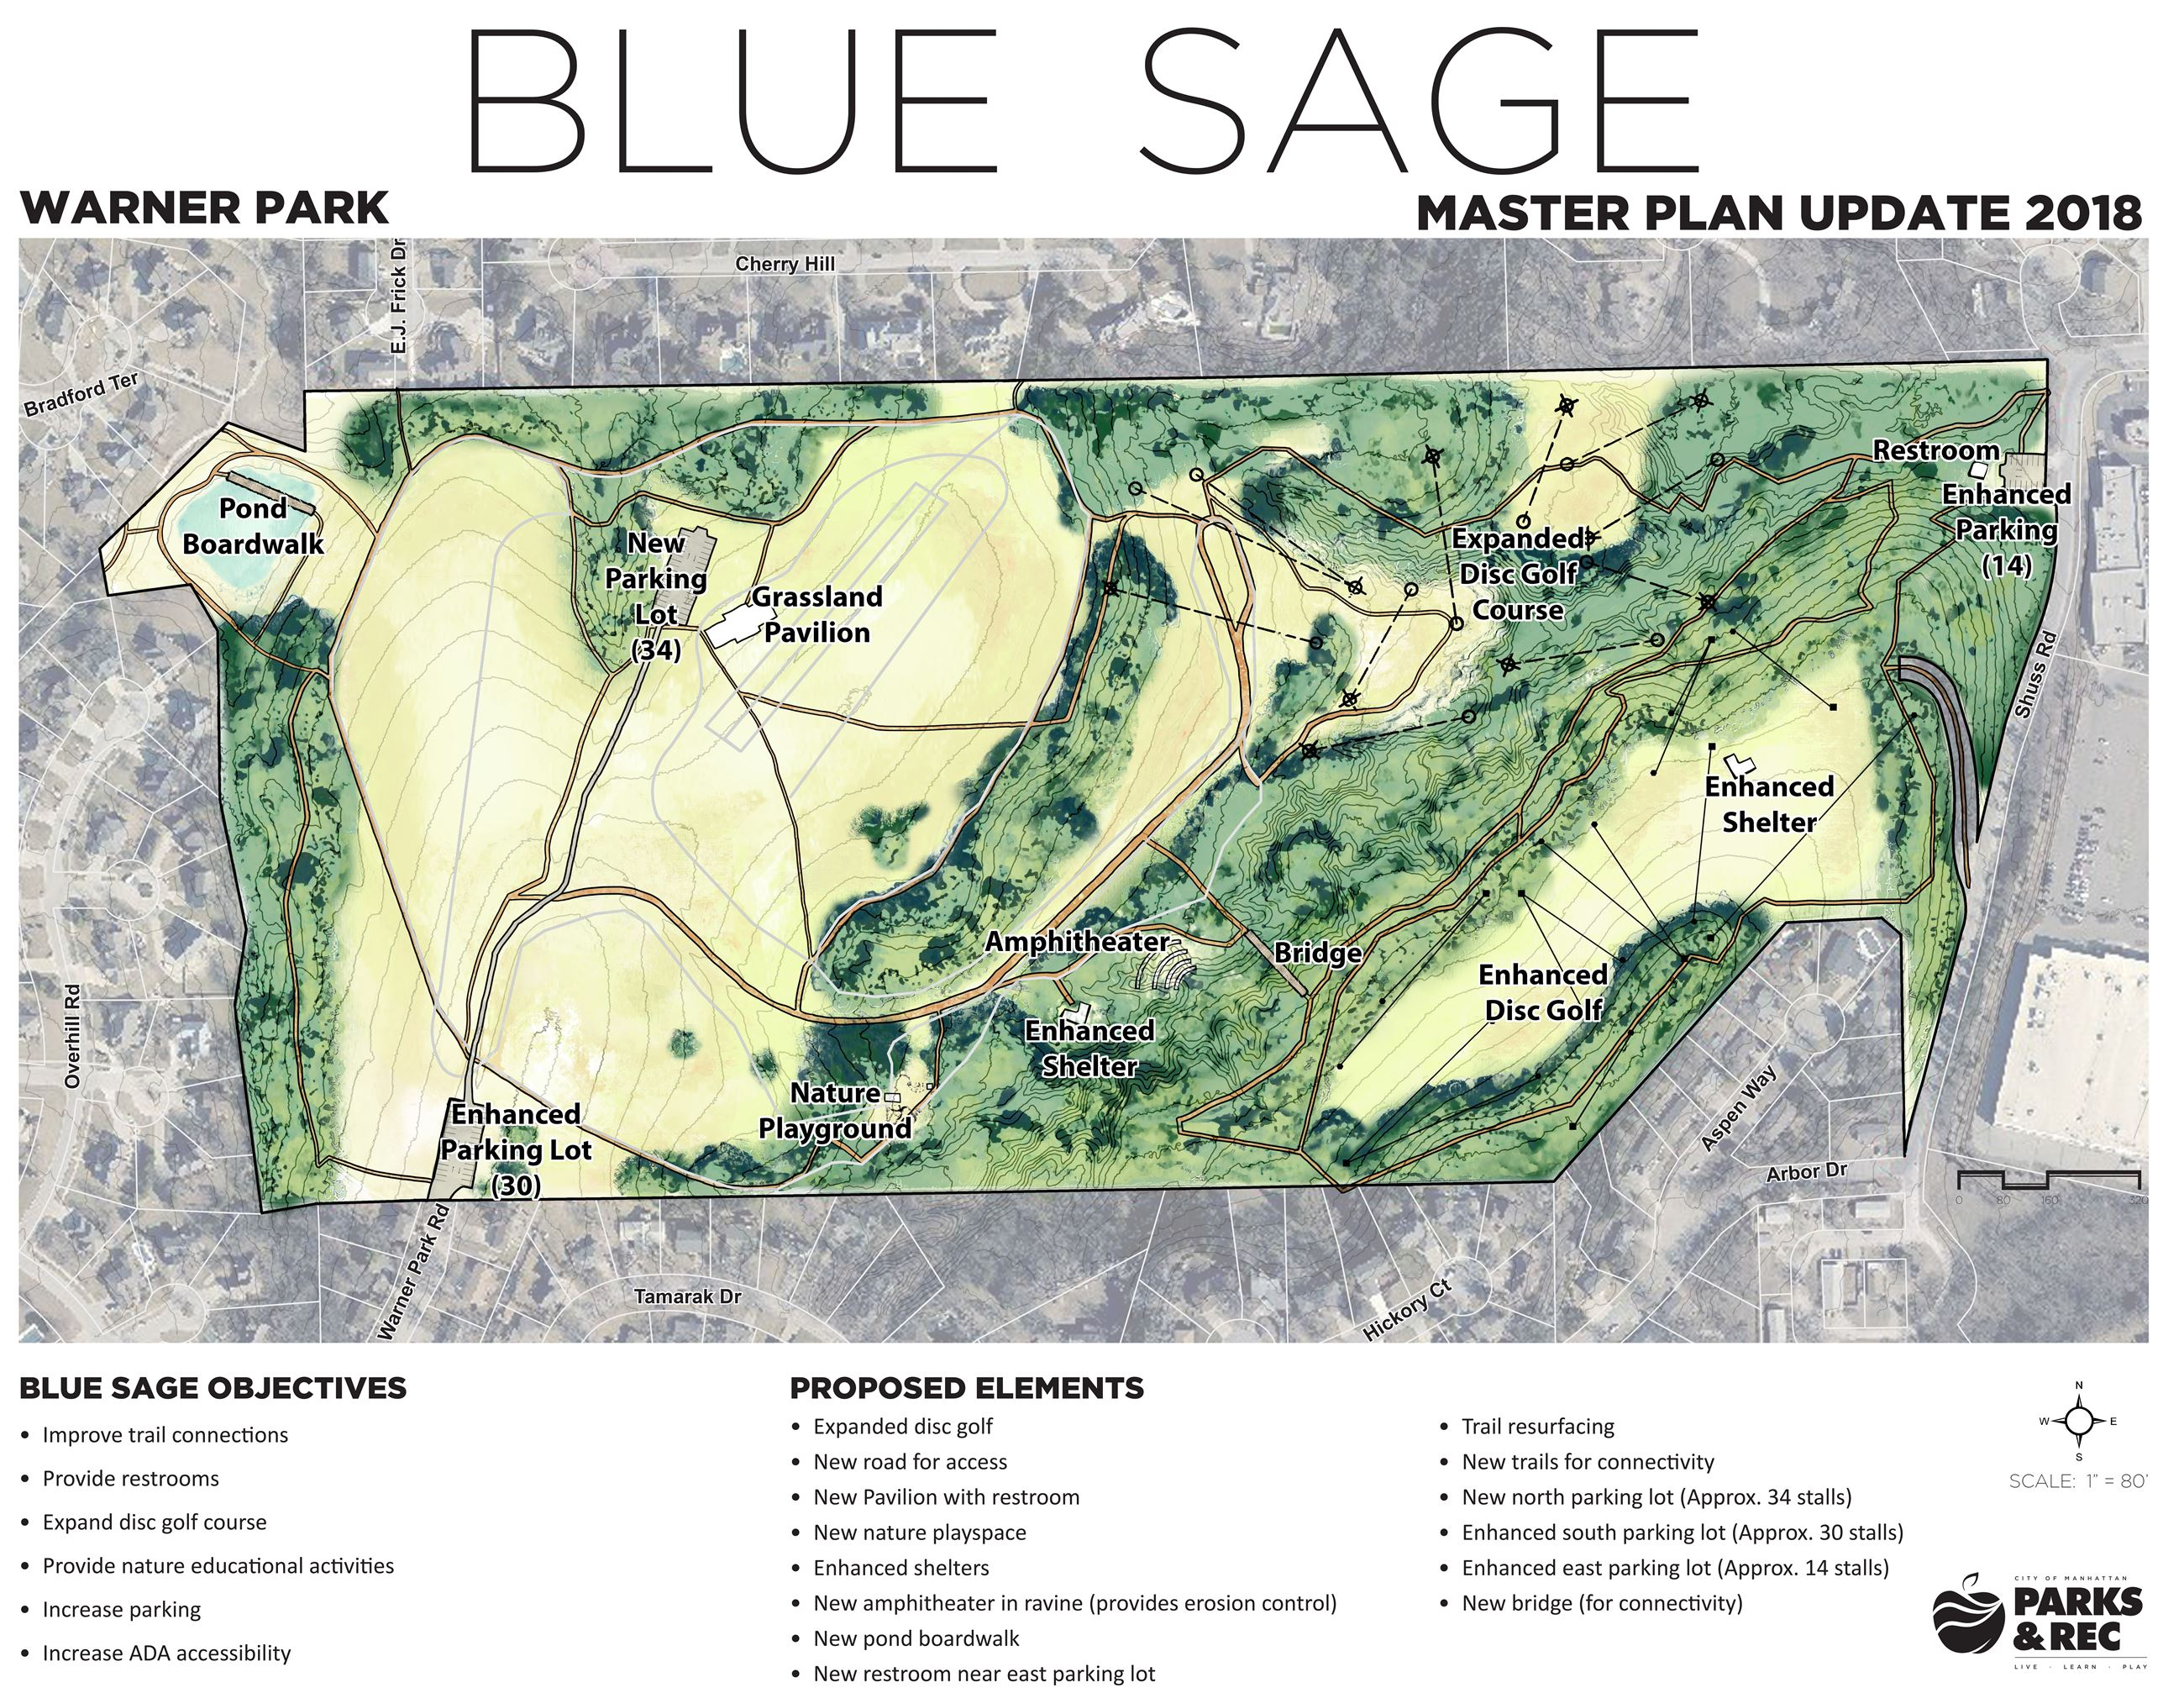 WarnerPark_BlueSage_Poster